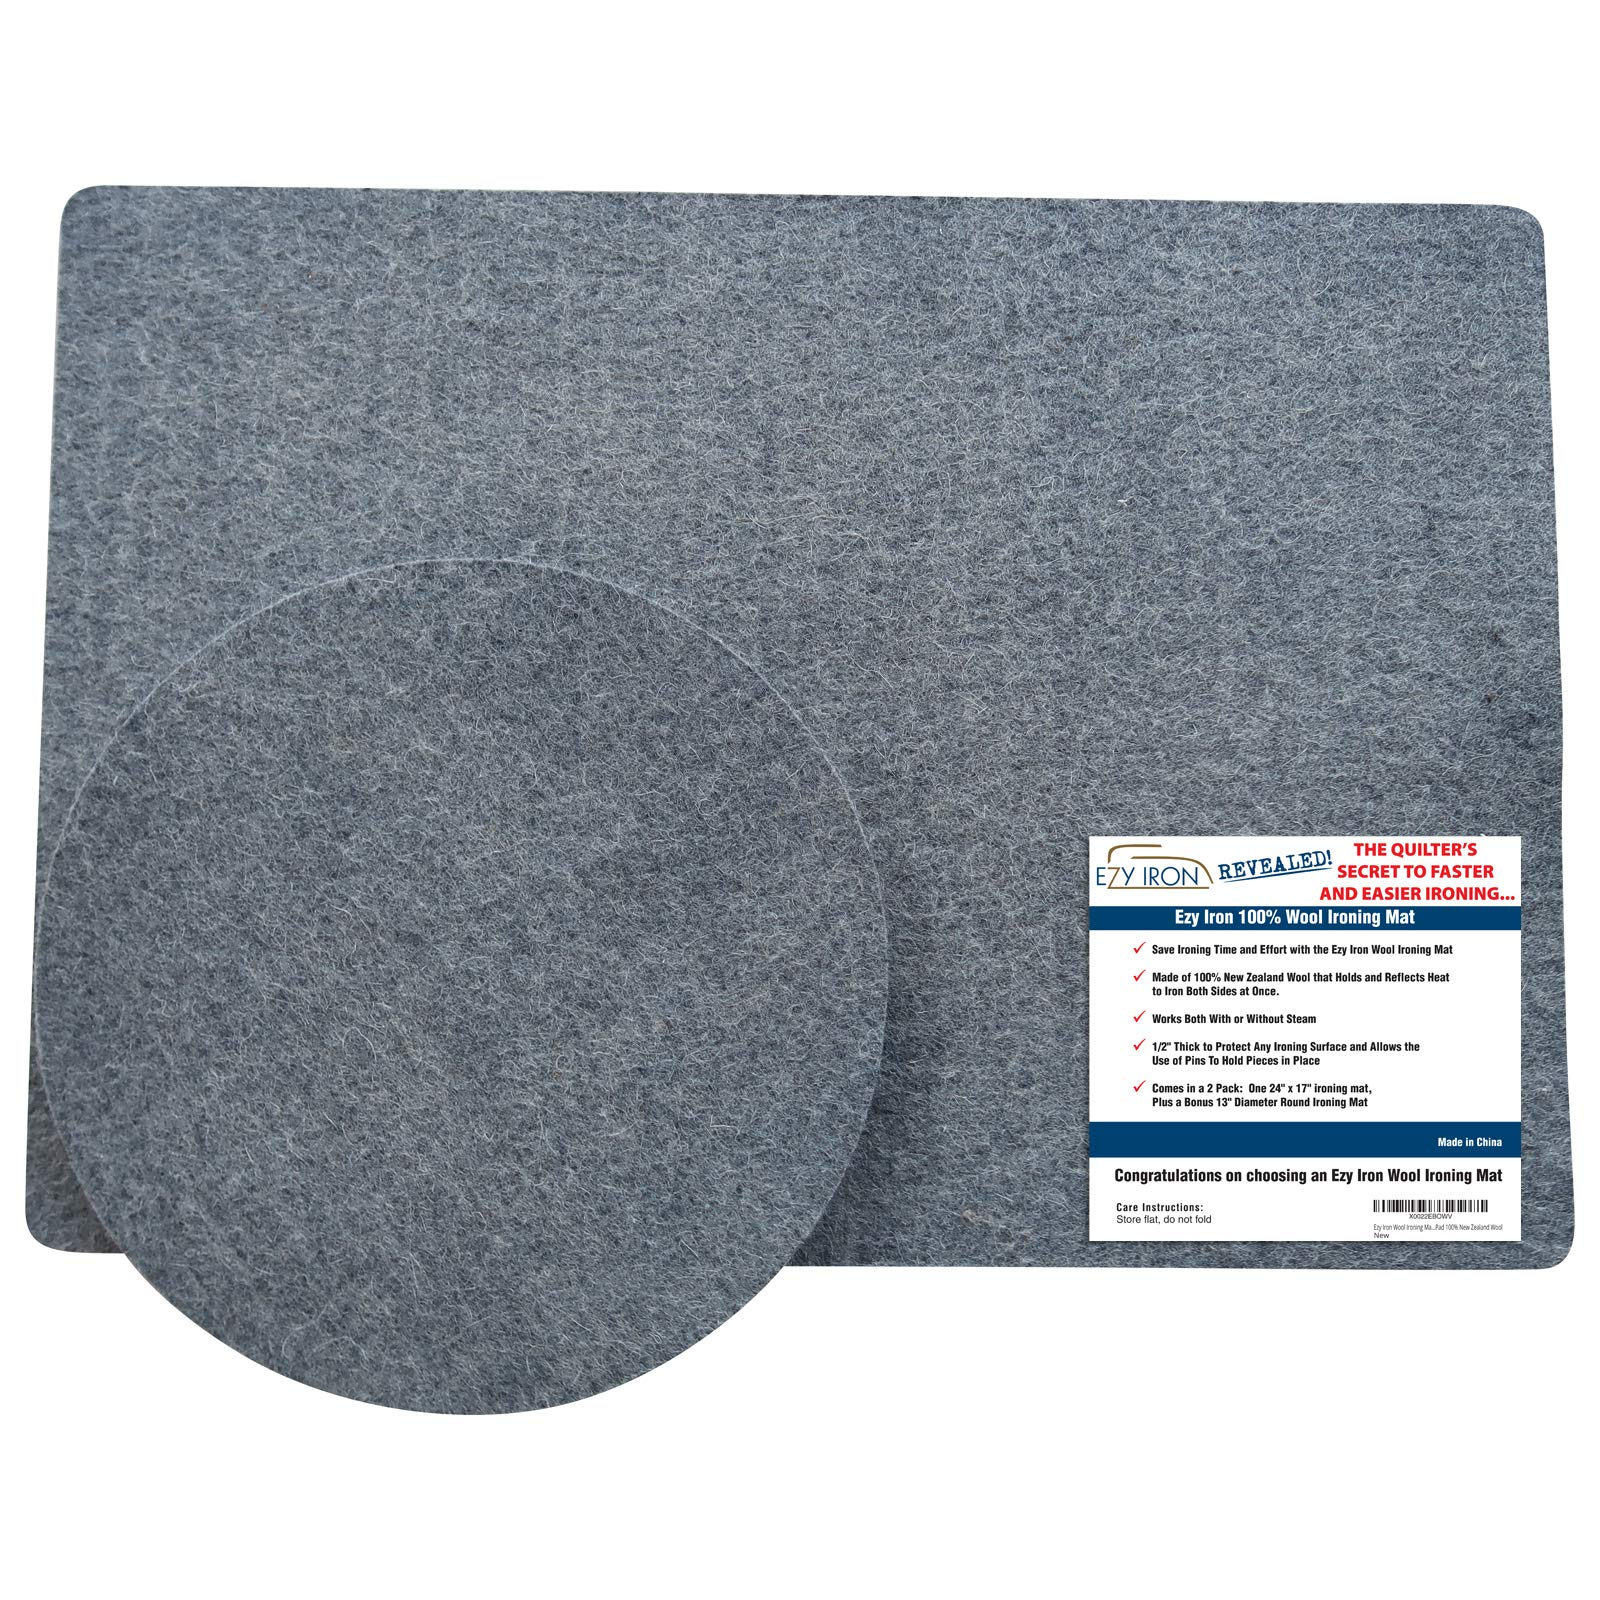 Wool Pressing Mat for Quilters - Quilting Supplies - 2 Pack - 24 x 17 inches + 13 inch Round Pad - 100% New Zealand Wool Felted Ironing Board Pads by Ezy Iron